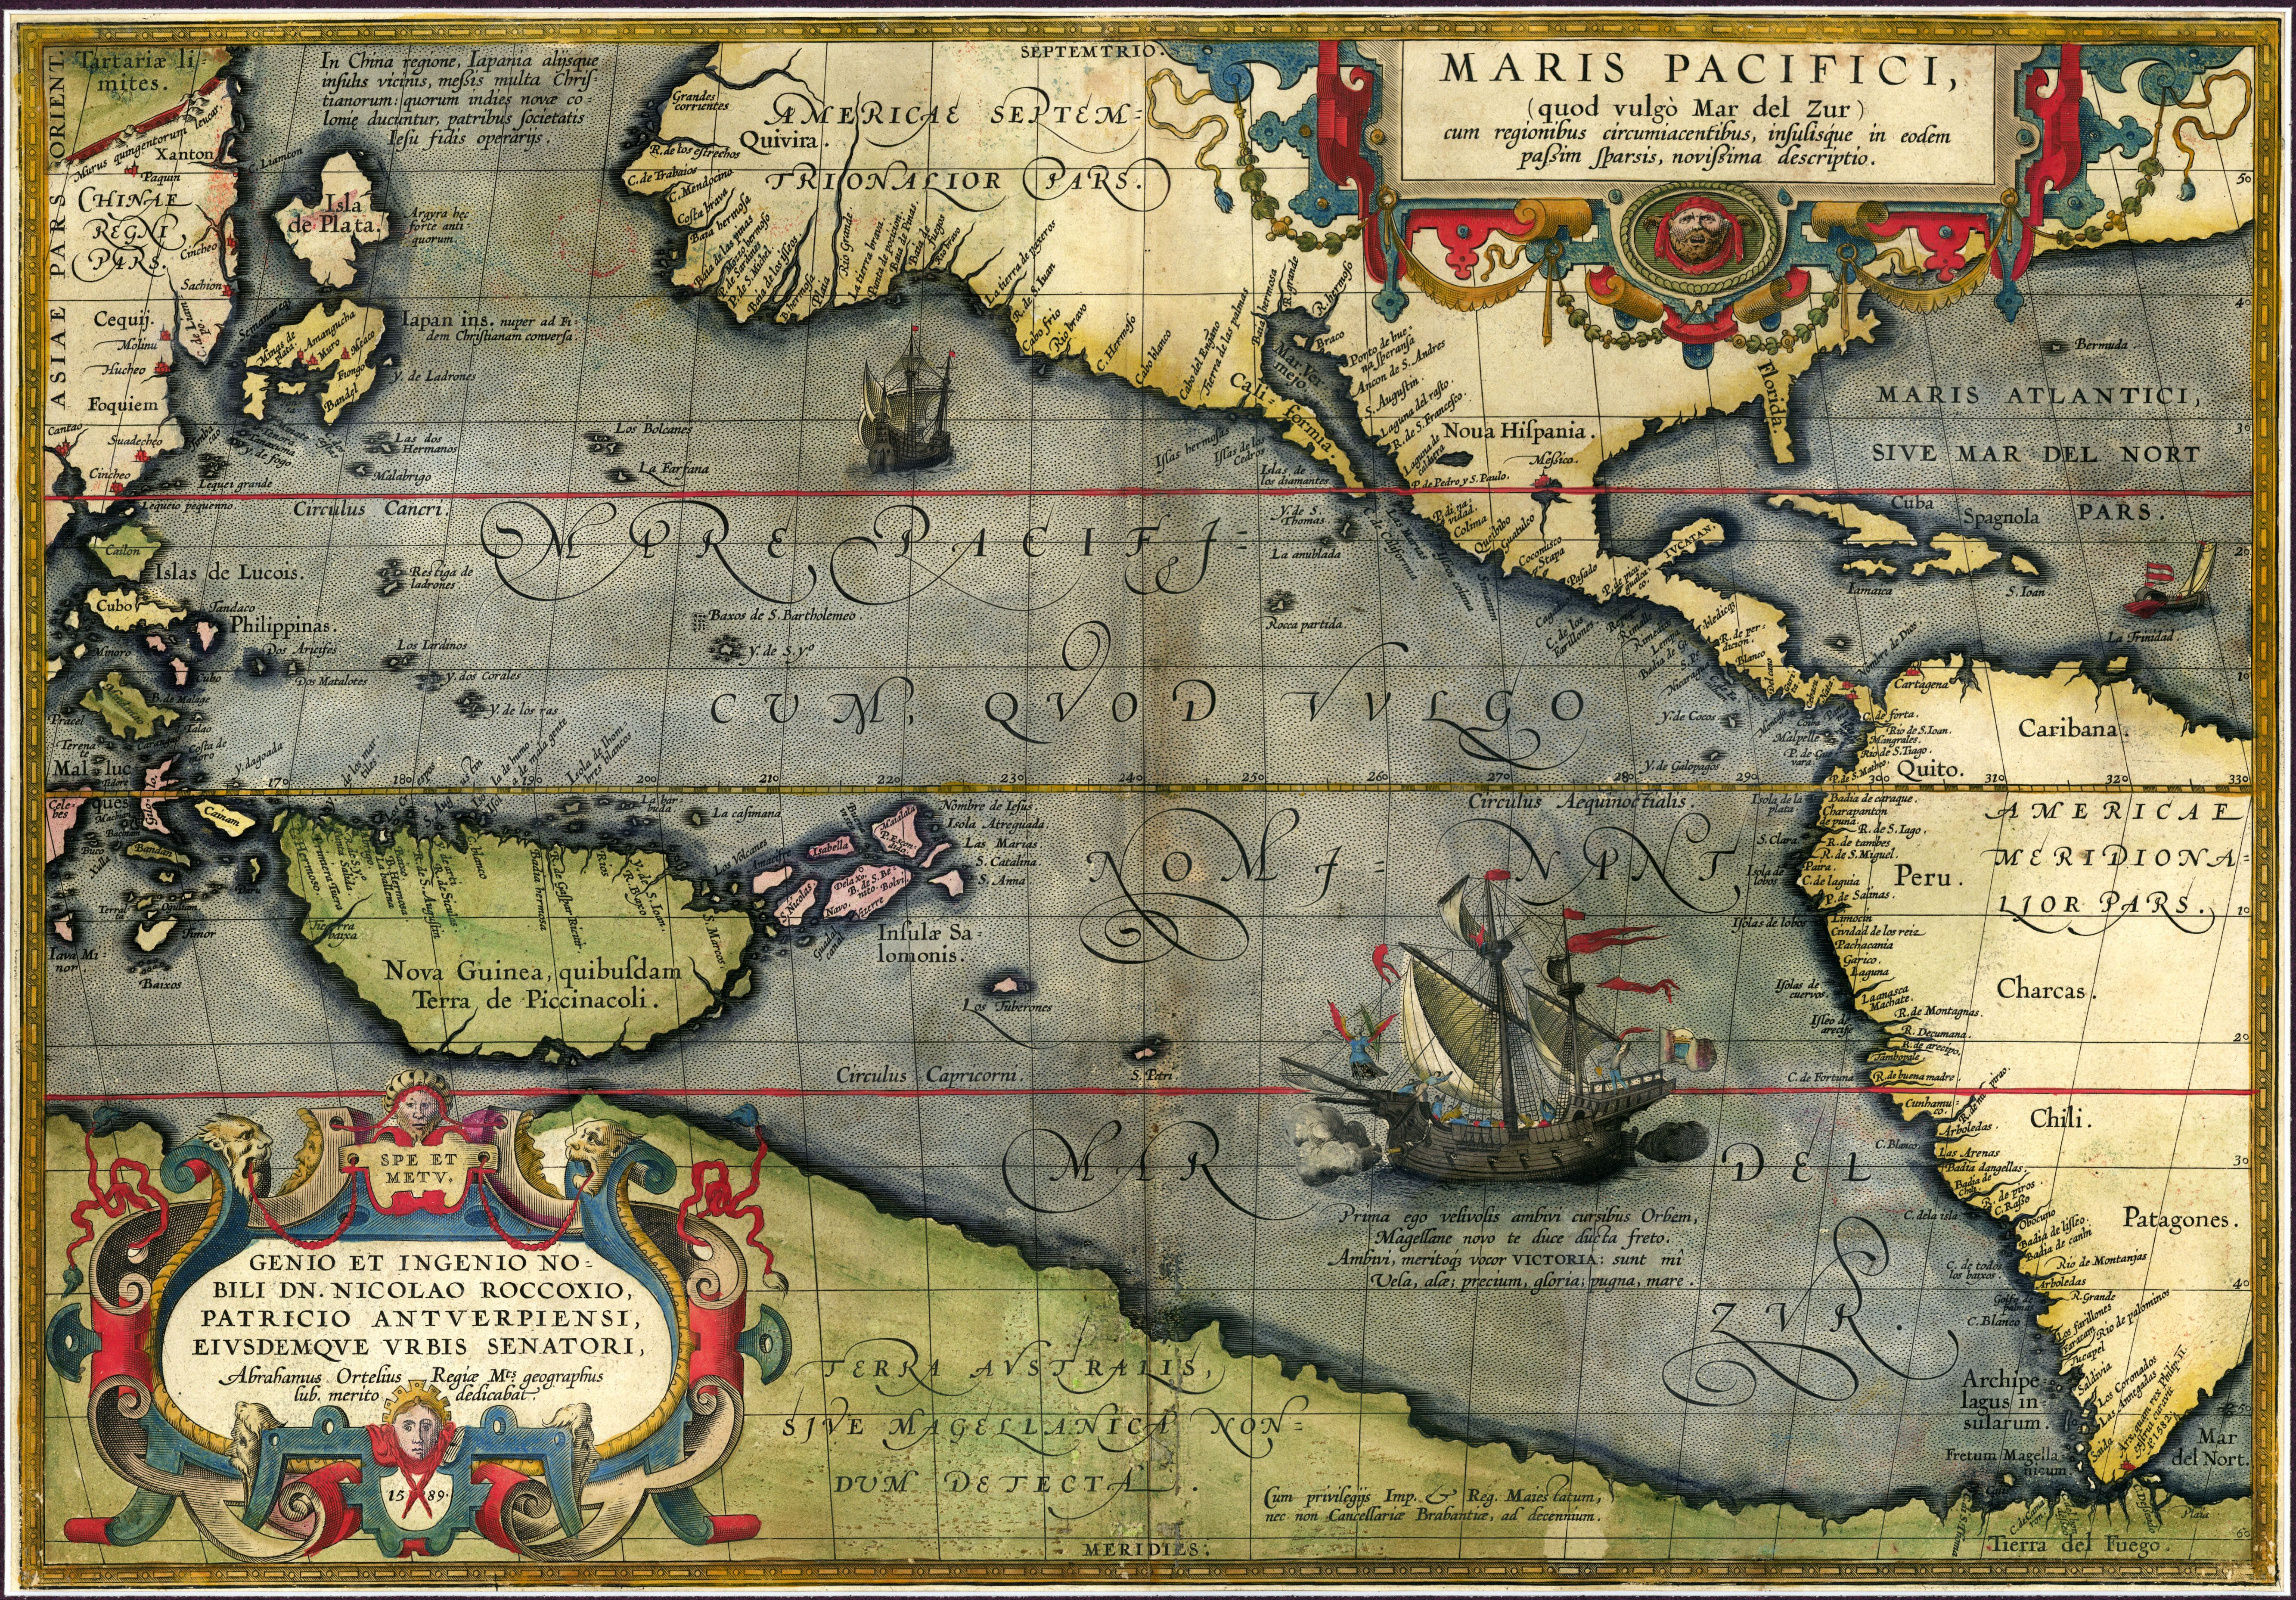 Maris Pacifici (or Pacific Ocean) 1589... map & work of art